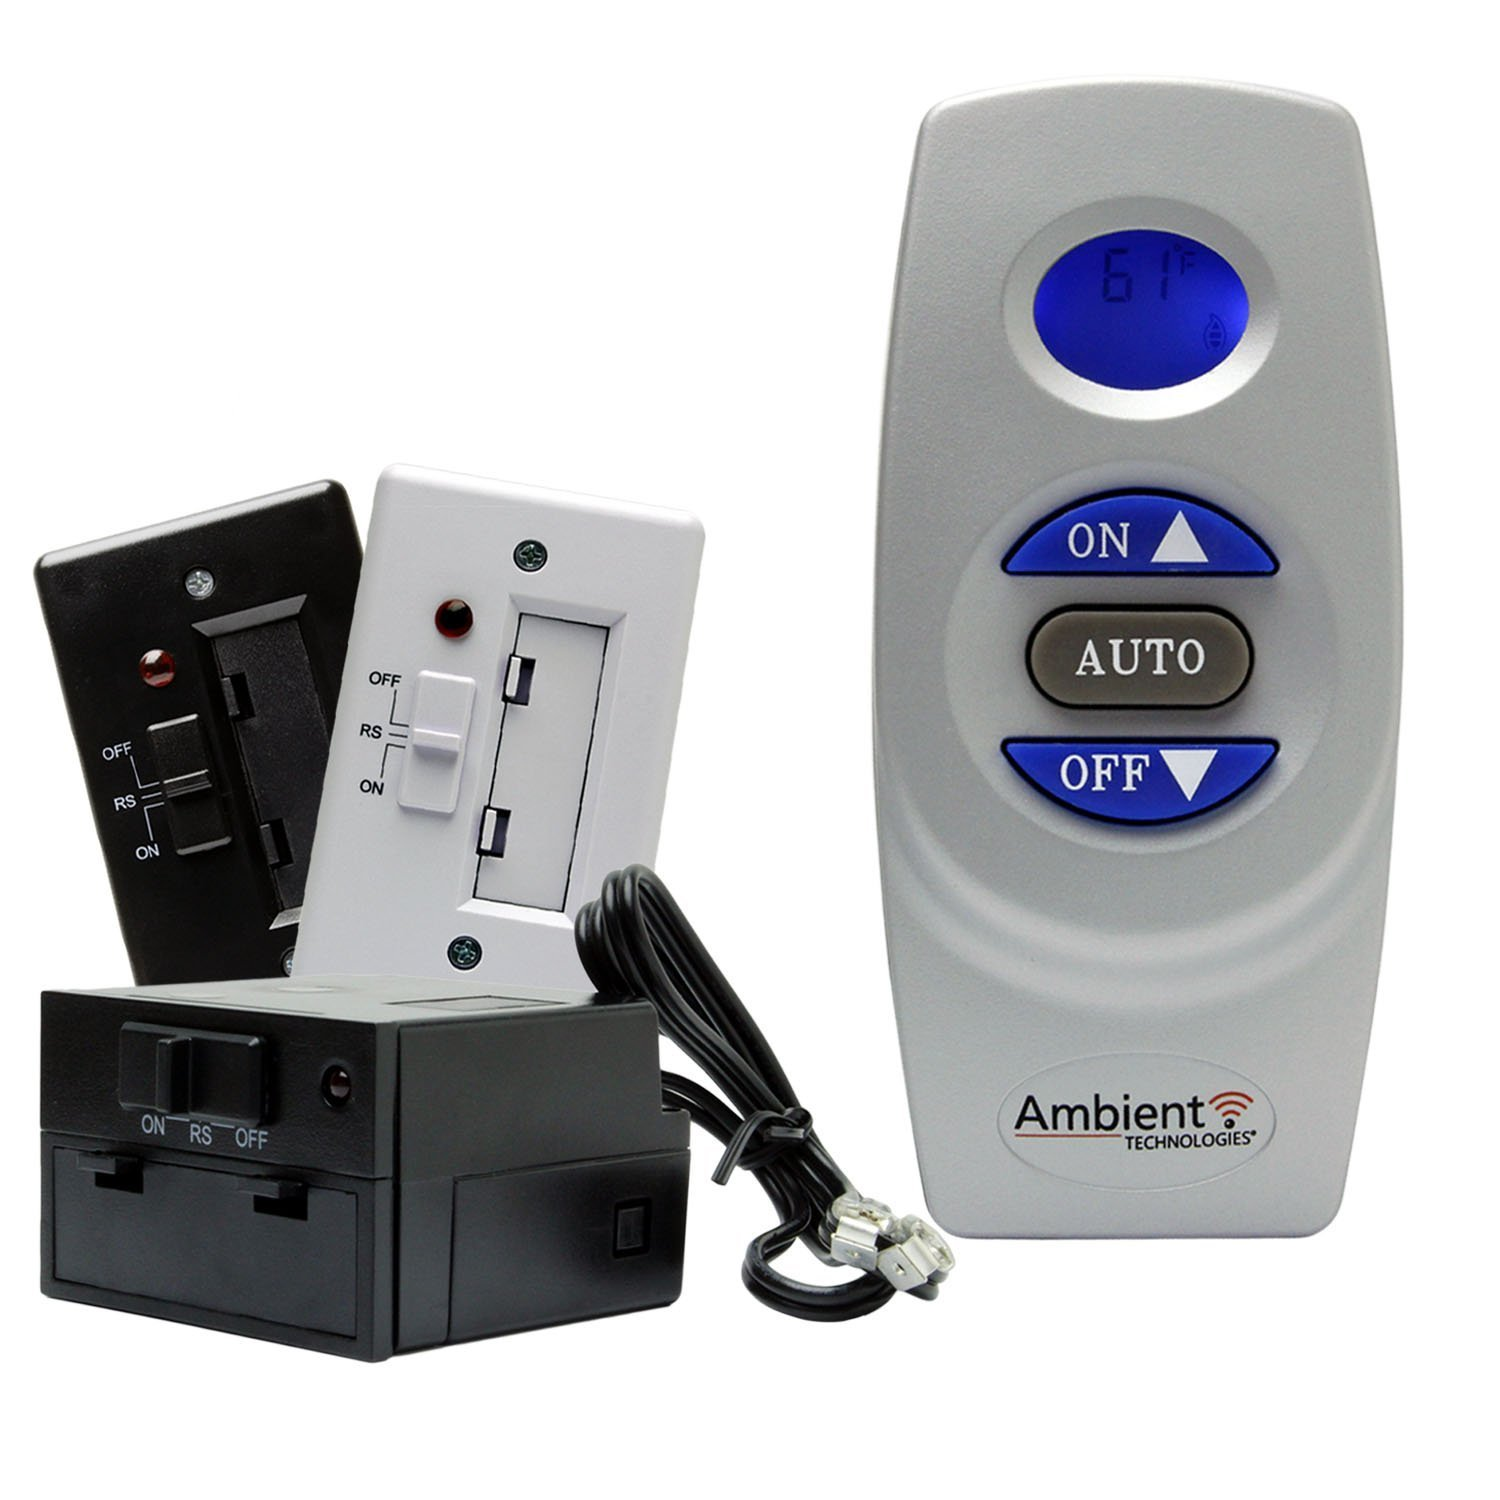 Fireplace Remote Control with Thermostat LCD Battery Operated | Majestic, Monessen, Vermont Castings Ambient Technologies